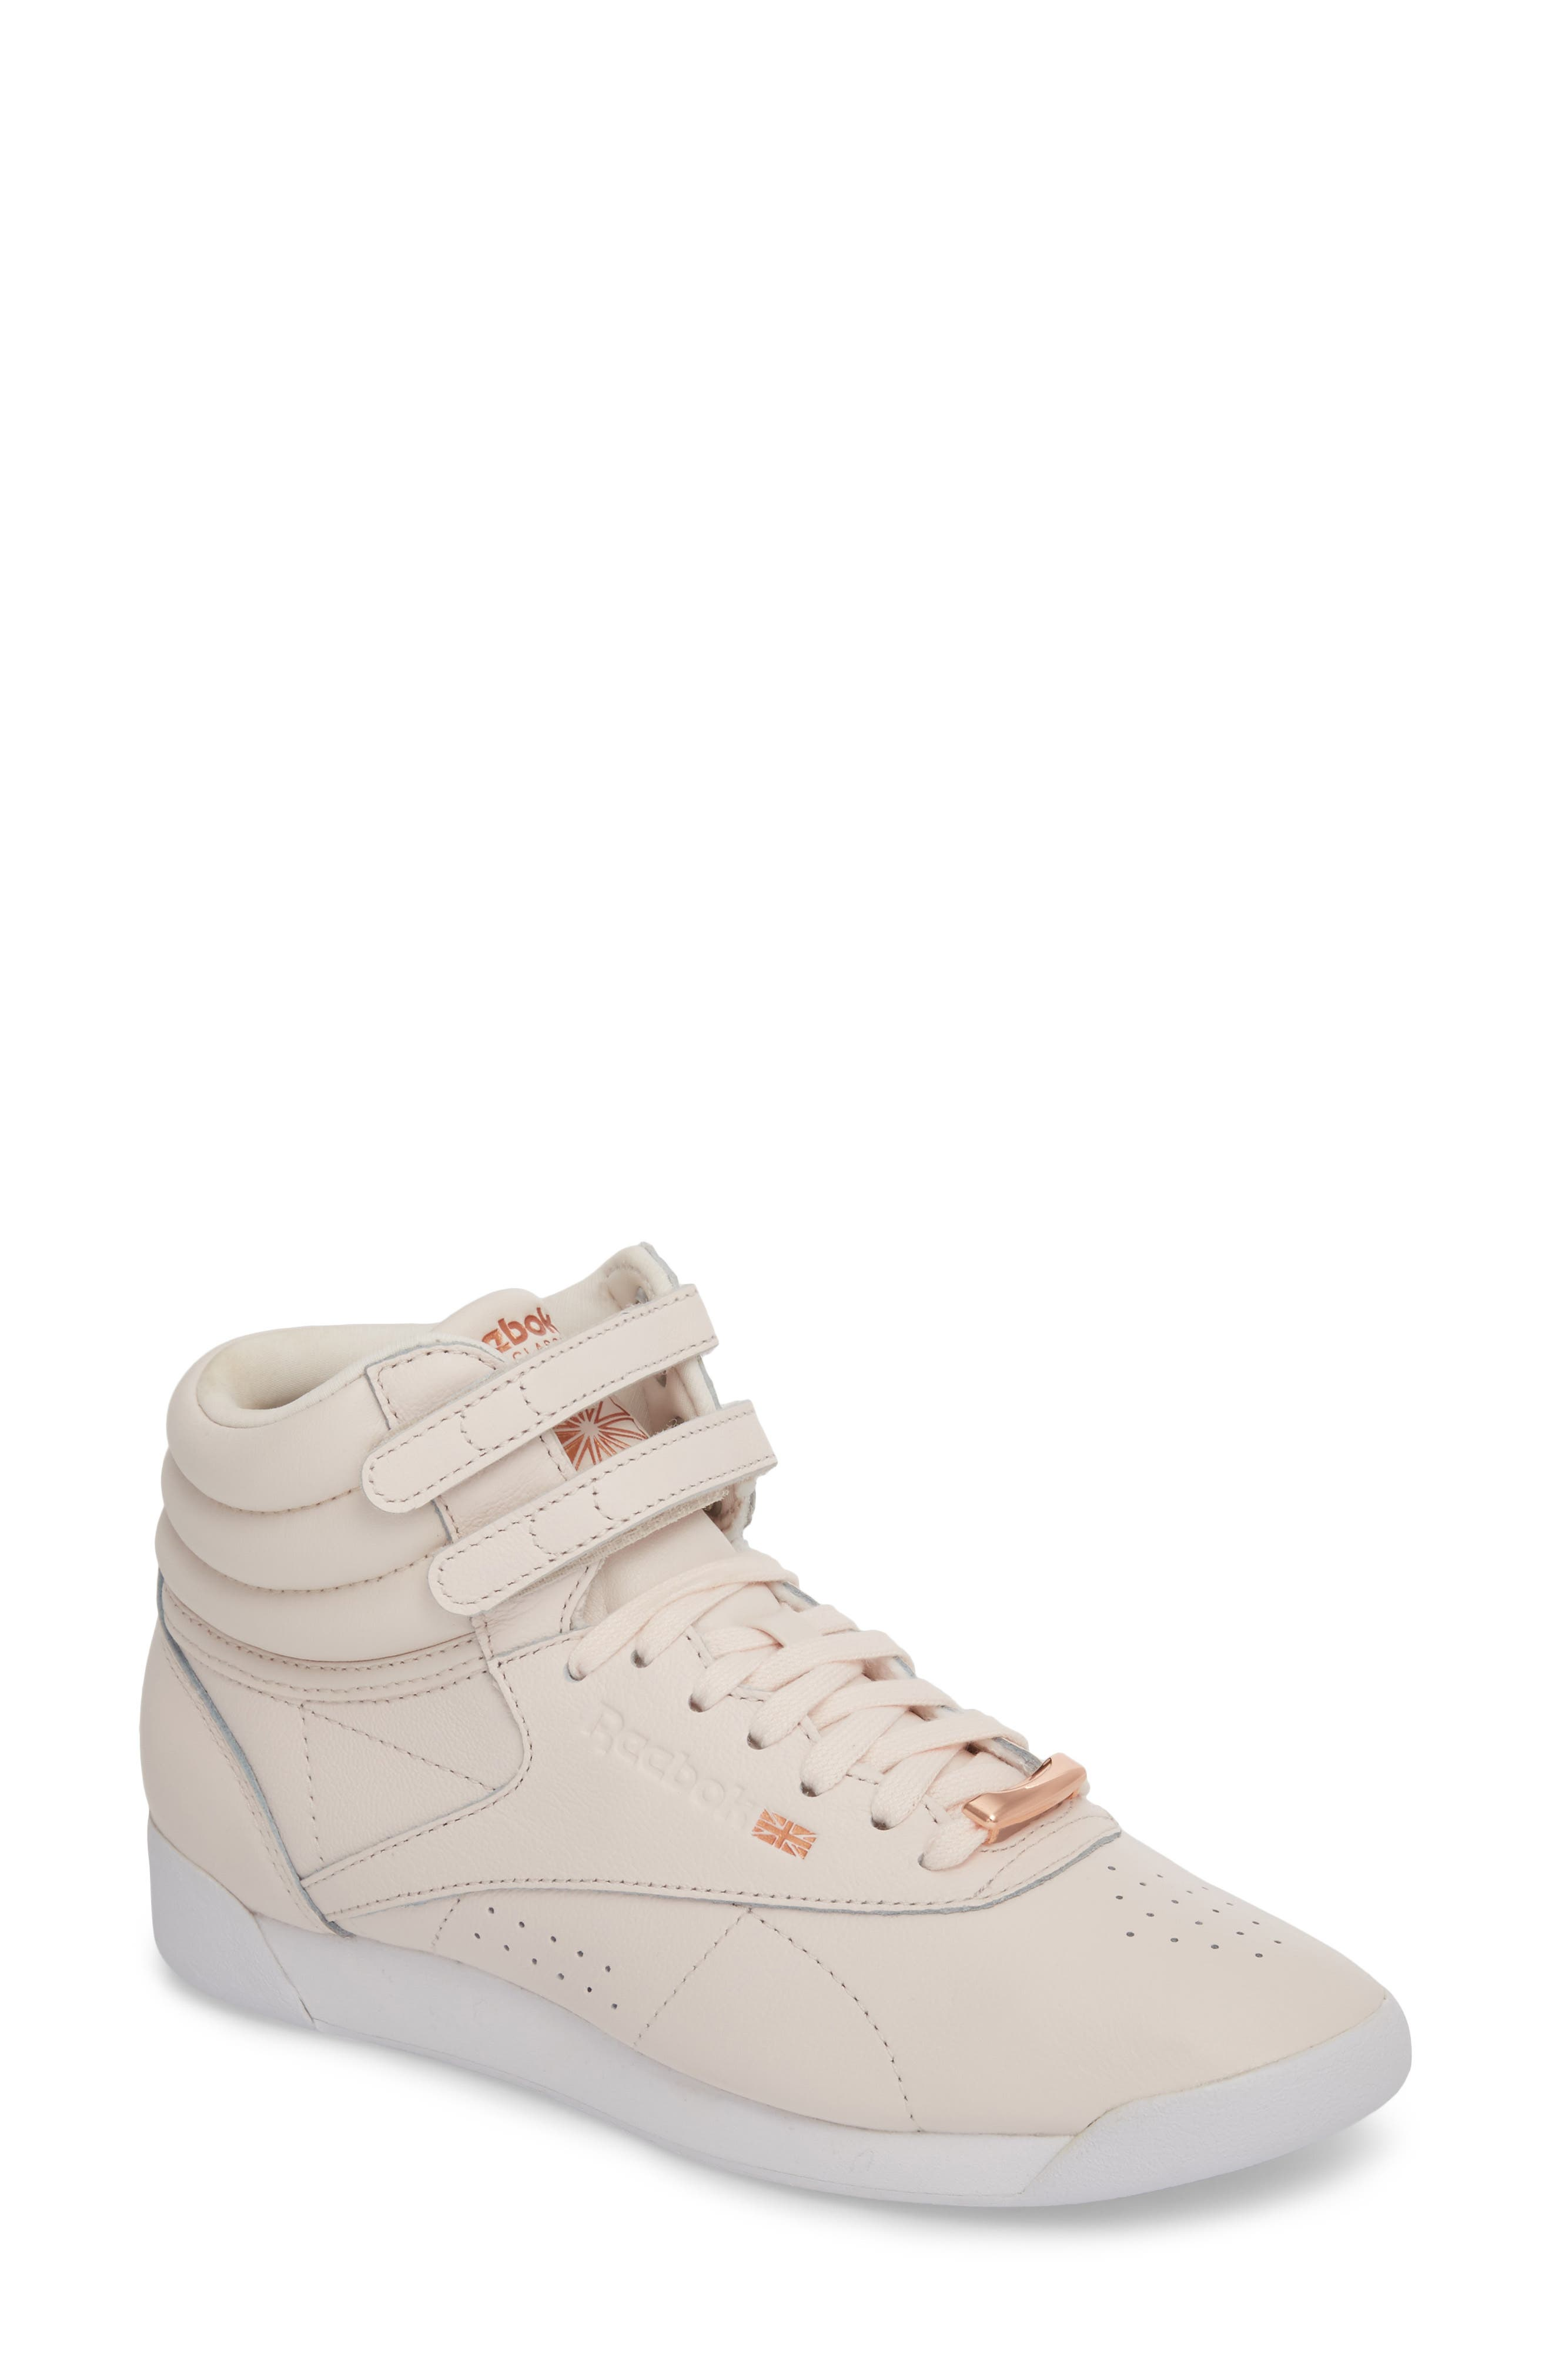 Reebok Freestyle Hi Muted Sneaker (Women)